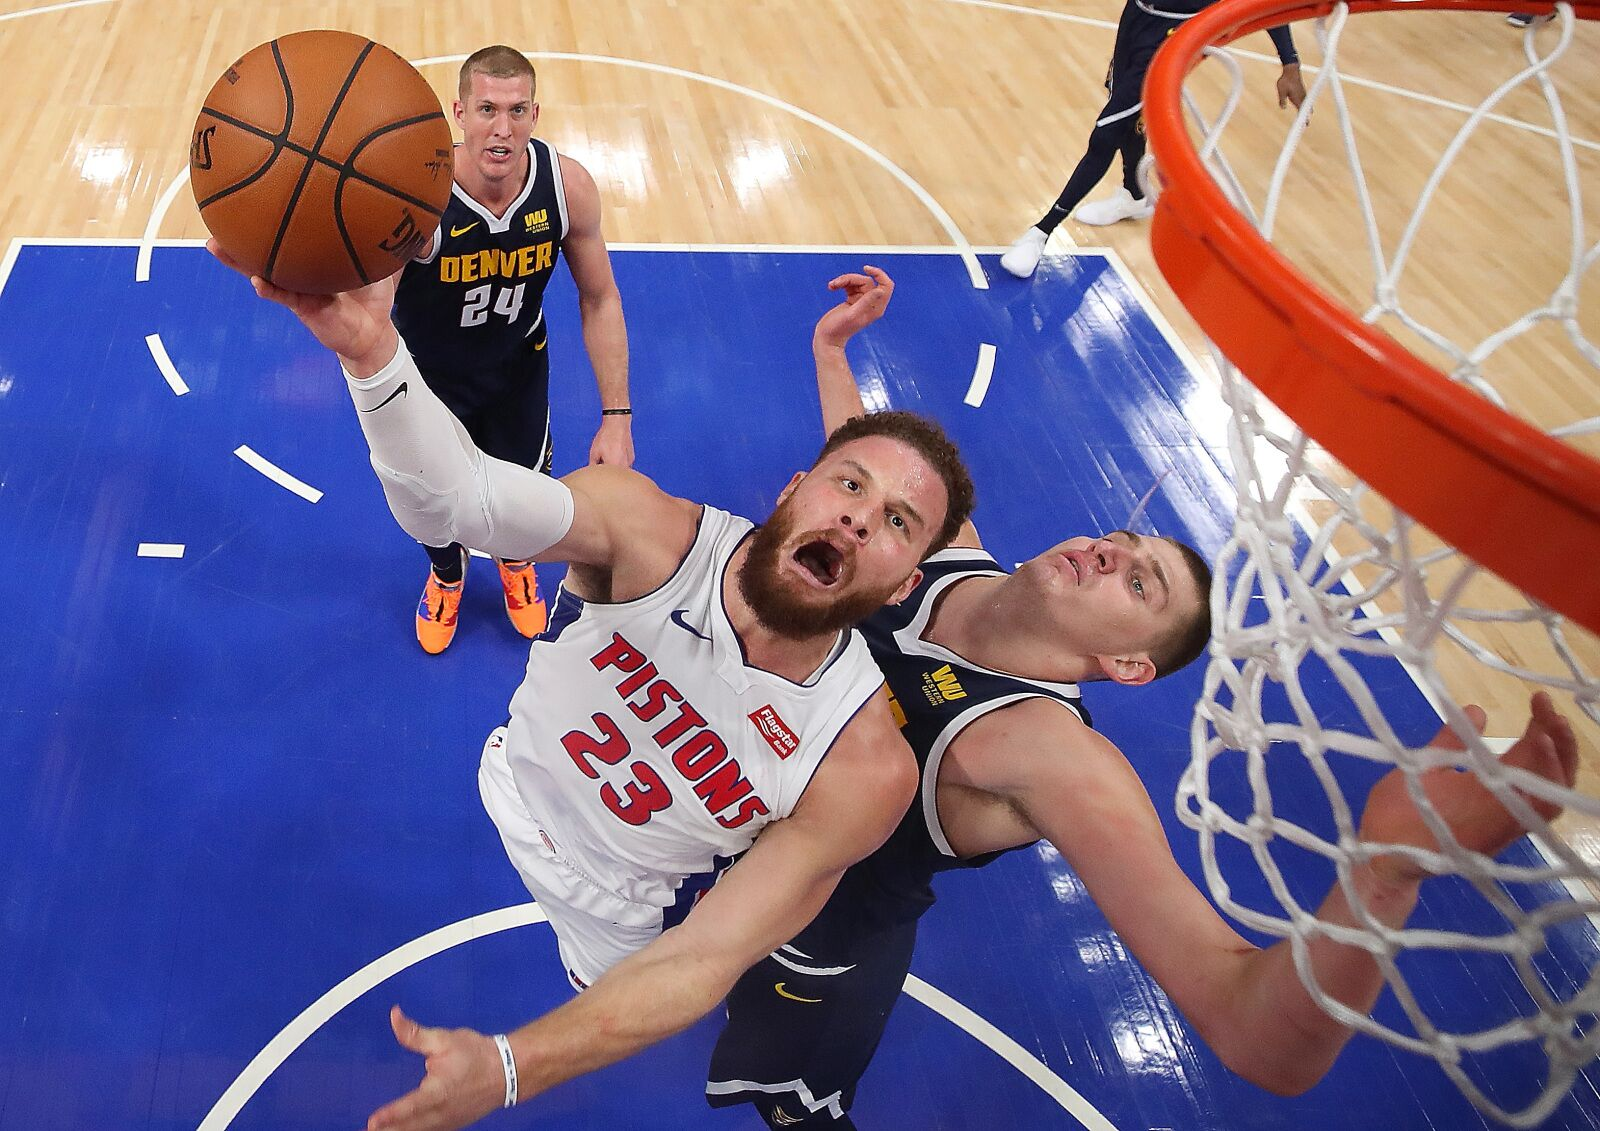 Around the 'net: Detroit Pistons preview, Blake Griffin and Dennis Rodman